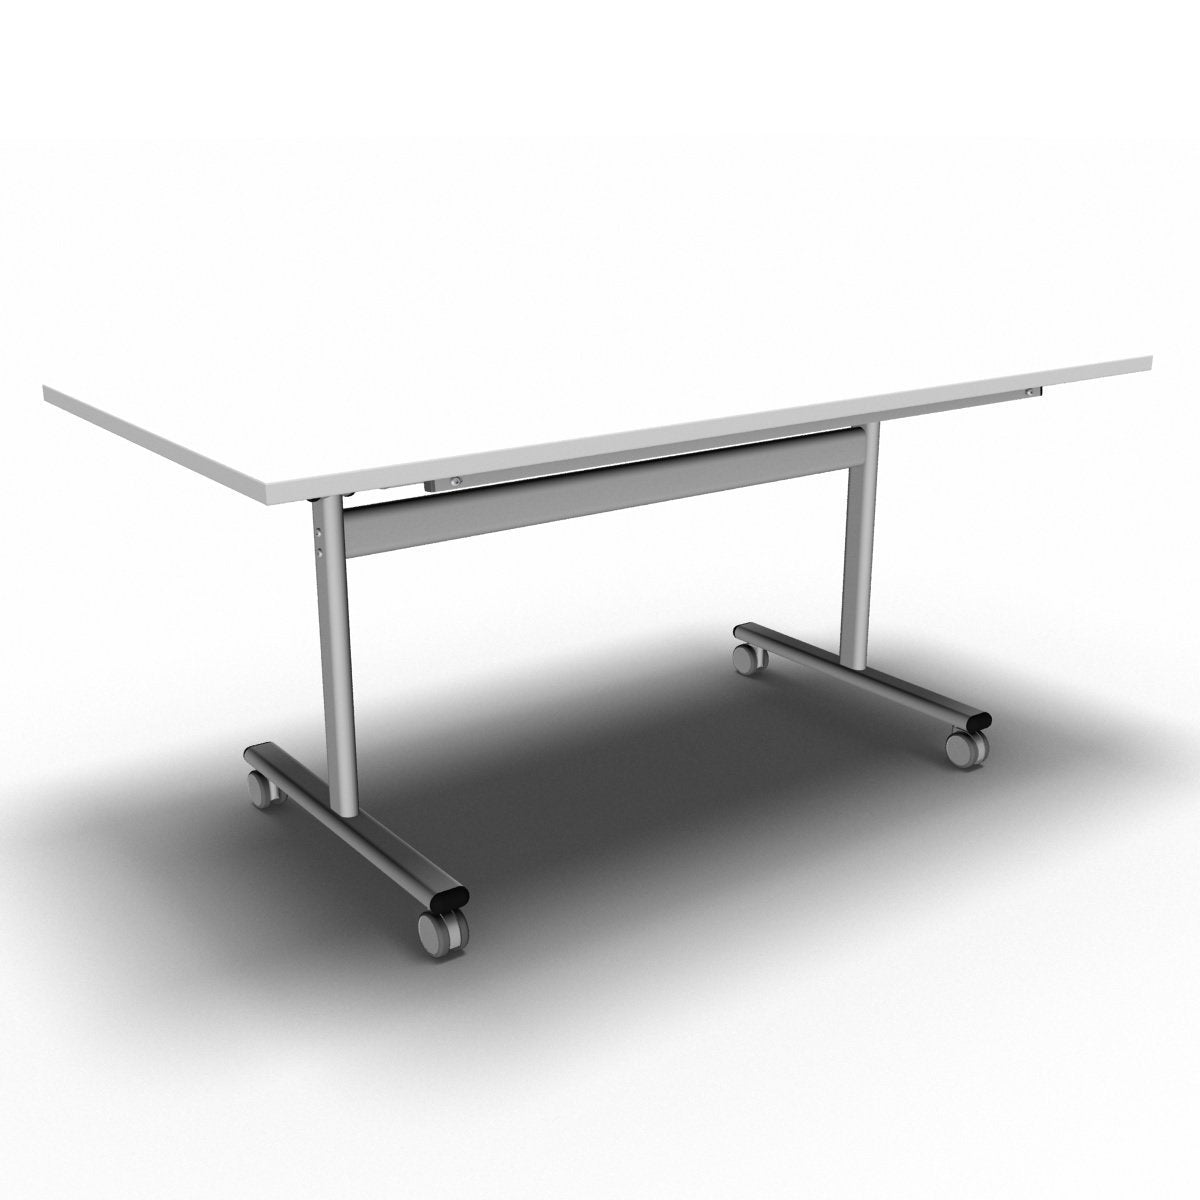 Table 1600 x 800 x 720mm / Rectangular / White Synergy Flip Top Tables